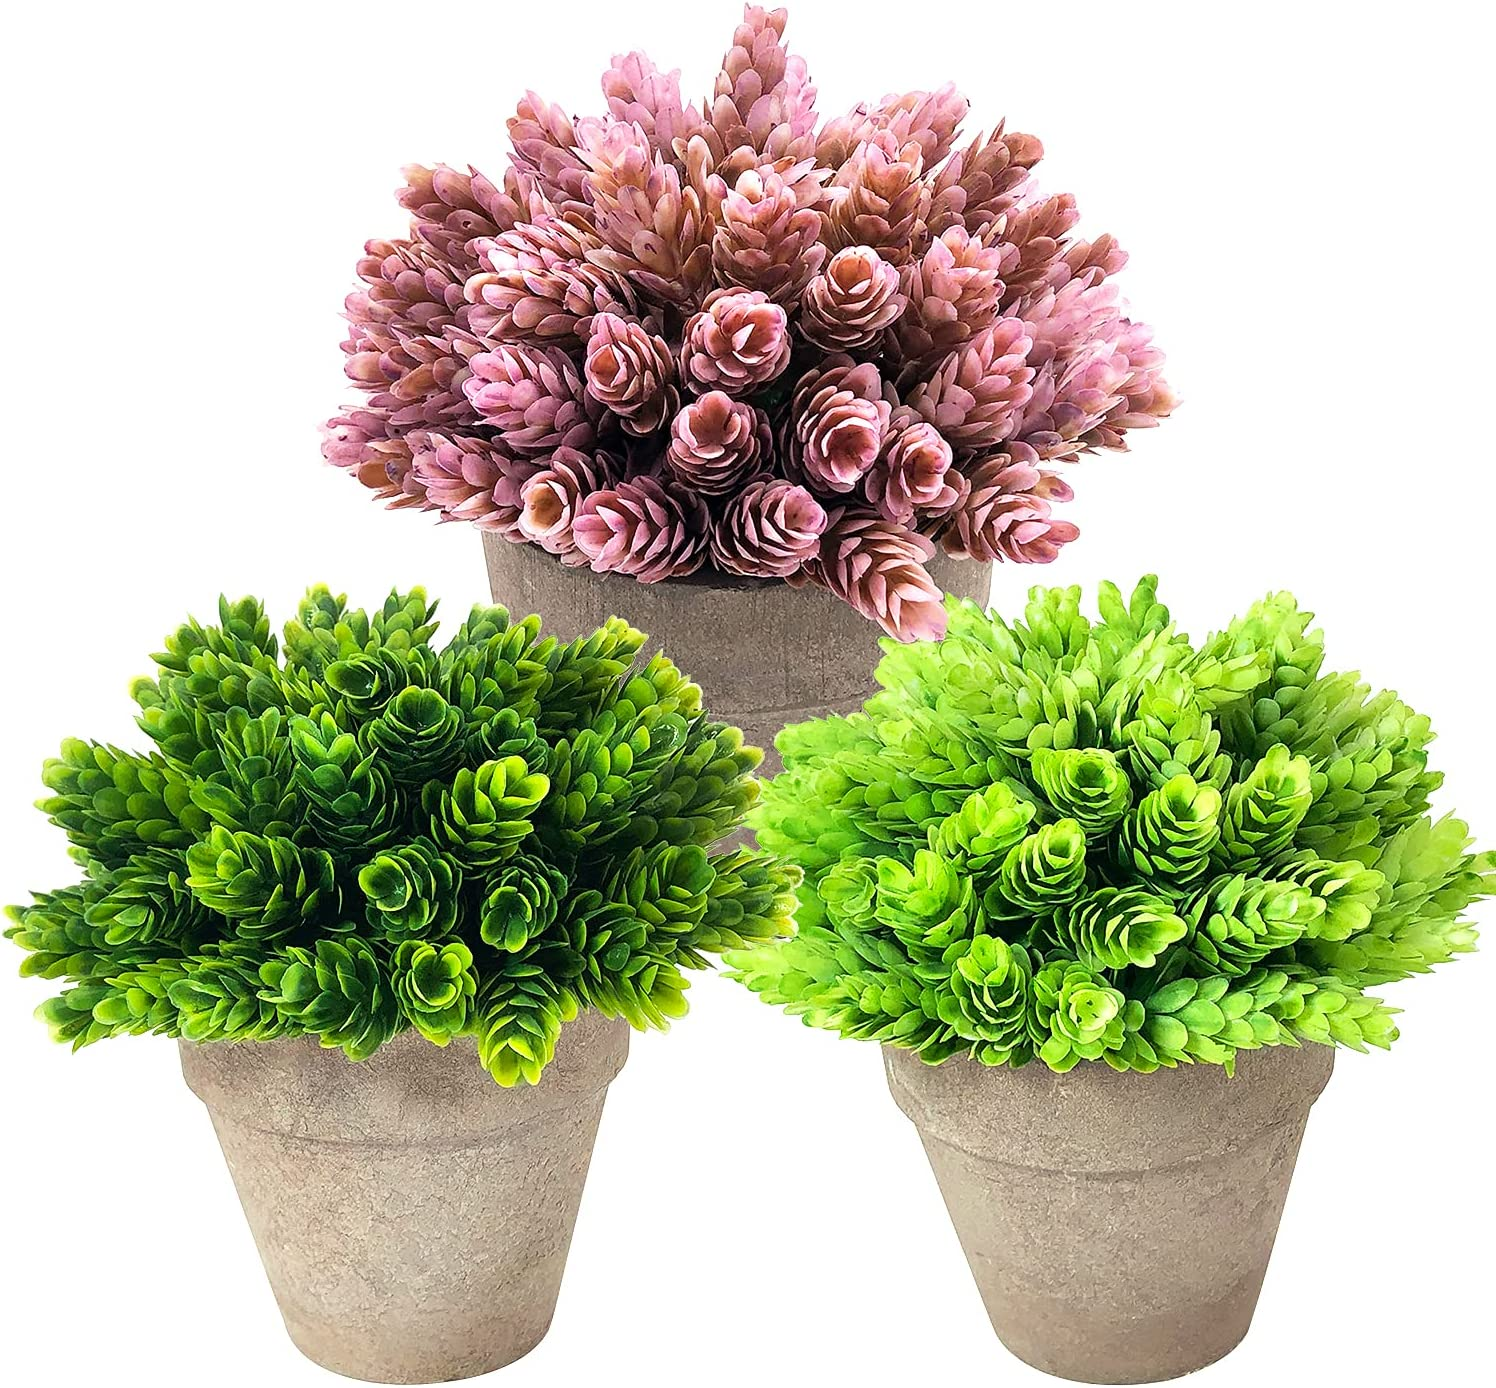 Small Artificial Potted Plants, 3 Pack Mini Fake Plants in Pot for Home Decor Indoor & Outdoor, Faux Plastic Green Grass Ball Greenery Plants for Wedding Farmhouse Shelf Office Tabletop Garden